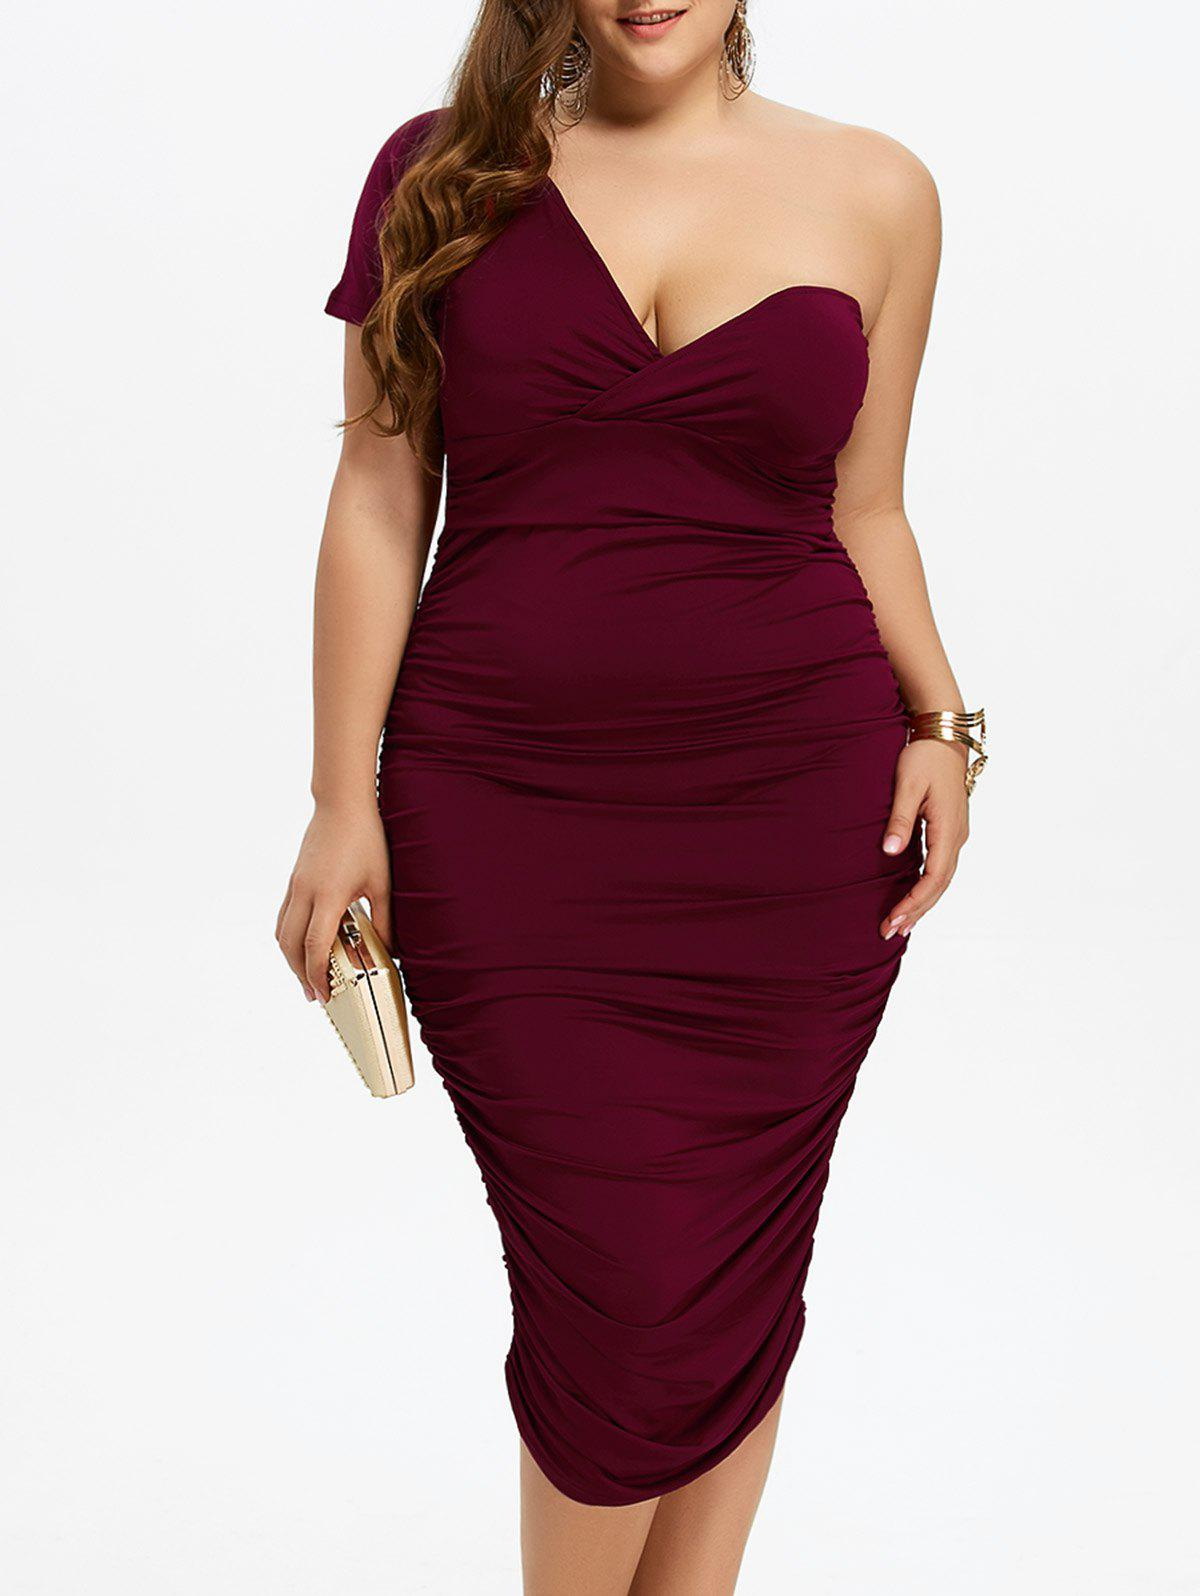 One Shoulder Bodycon Prom Plus Size Cocktail Bandage DressWOMEN<br><br>Size: 3XL; Color: WINE RED; Style: Brief; Material: Polyester; Silhouette: Sheath; Dresses Length: Mid-Calf; Neckline: One-Shoulder; Sleeve Length: Short Sleeves; Pattern Type: Solid; With Belt: No; Season: Fall,Spring,Summer; Weight: 0.3700kg; Package Contents: 1 x Dress;